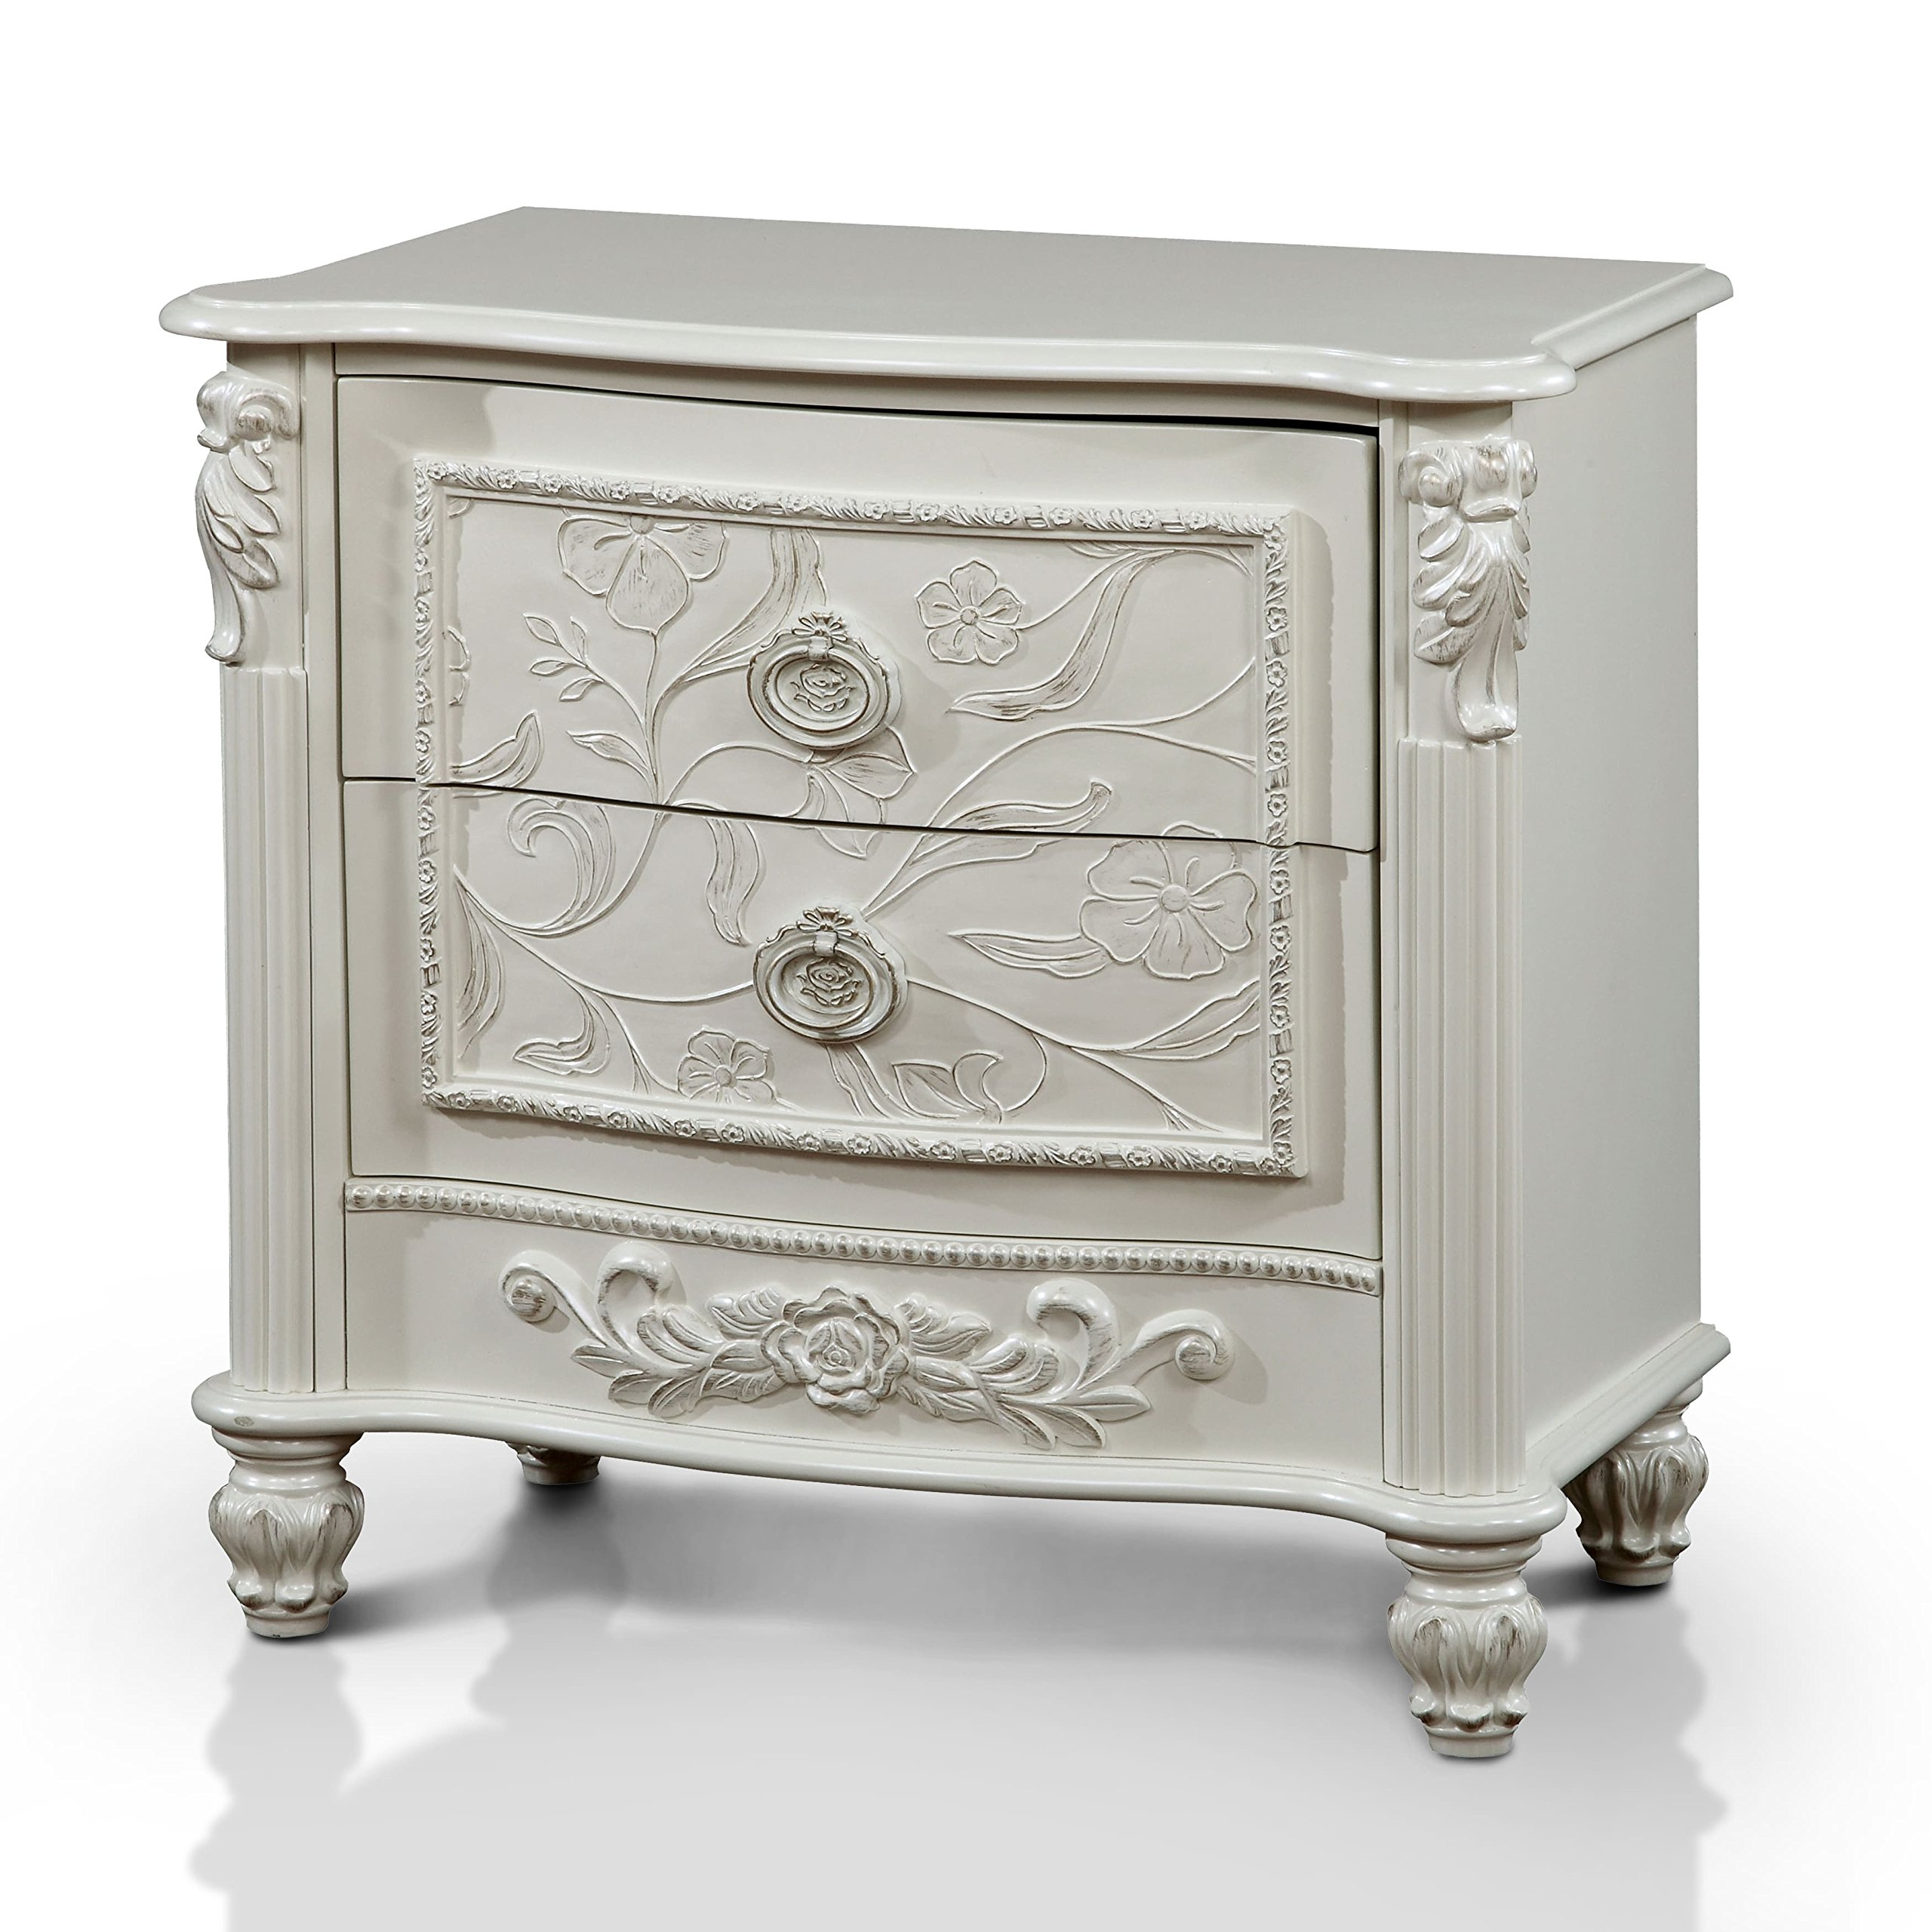 Furniture of America Margie Traditional Elegant Fairy Tale Style 2-drawer White Nightstand by Furniture of America